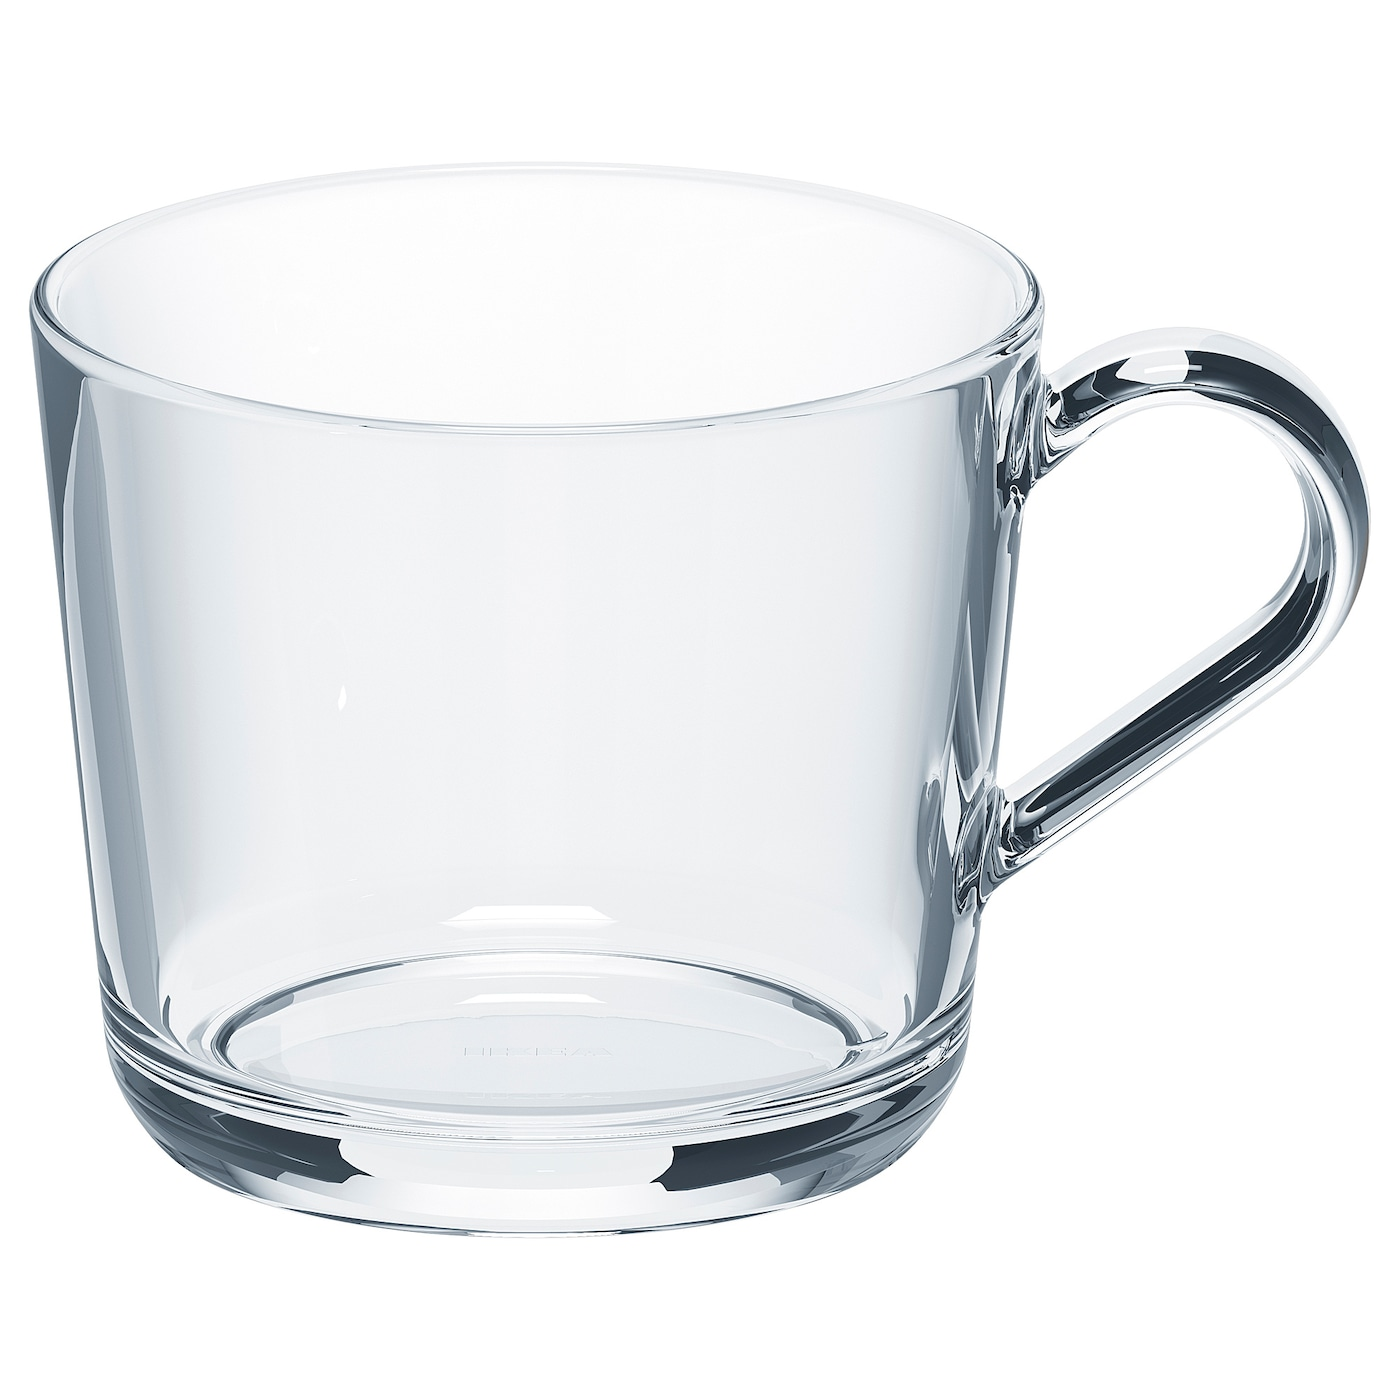 Mug Glass Cheaper Than Retail Price Buy Clothing Accessories And Lifestyle Products For Women Men